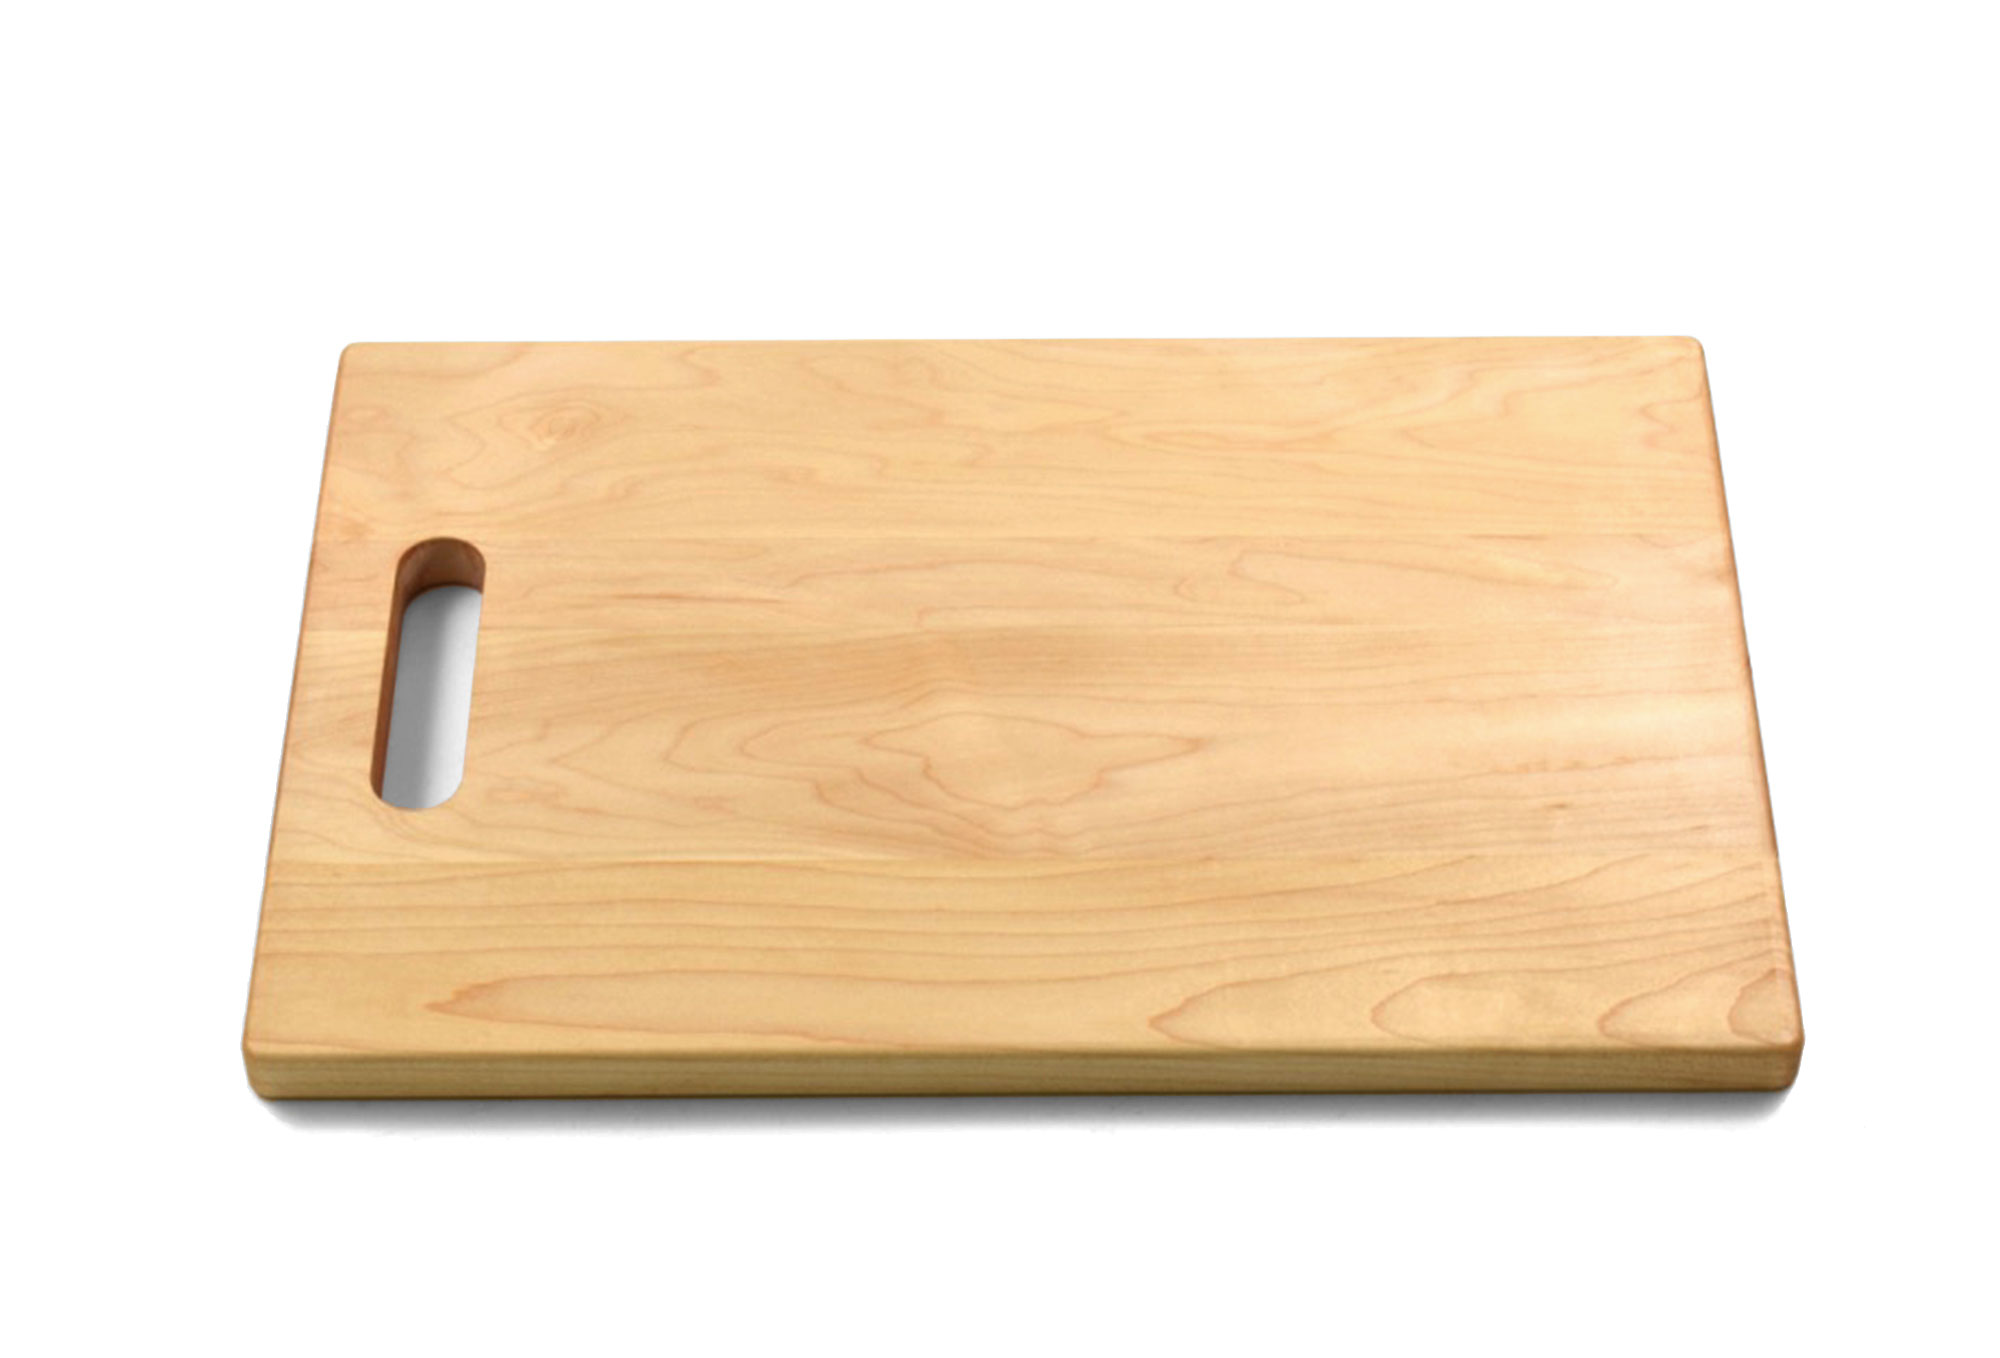 Handle board rounder corners & edges